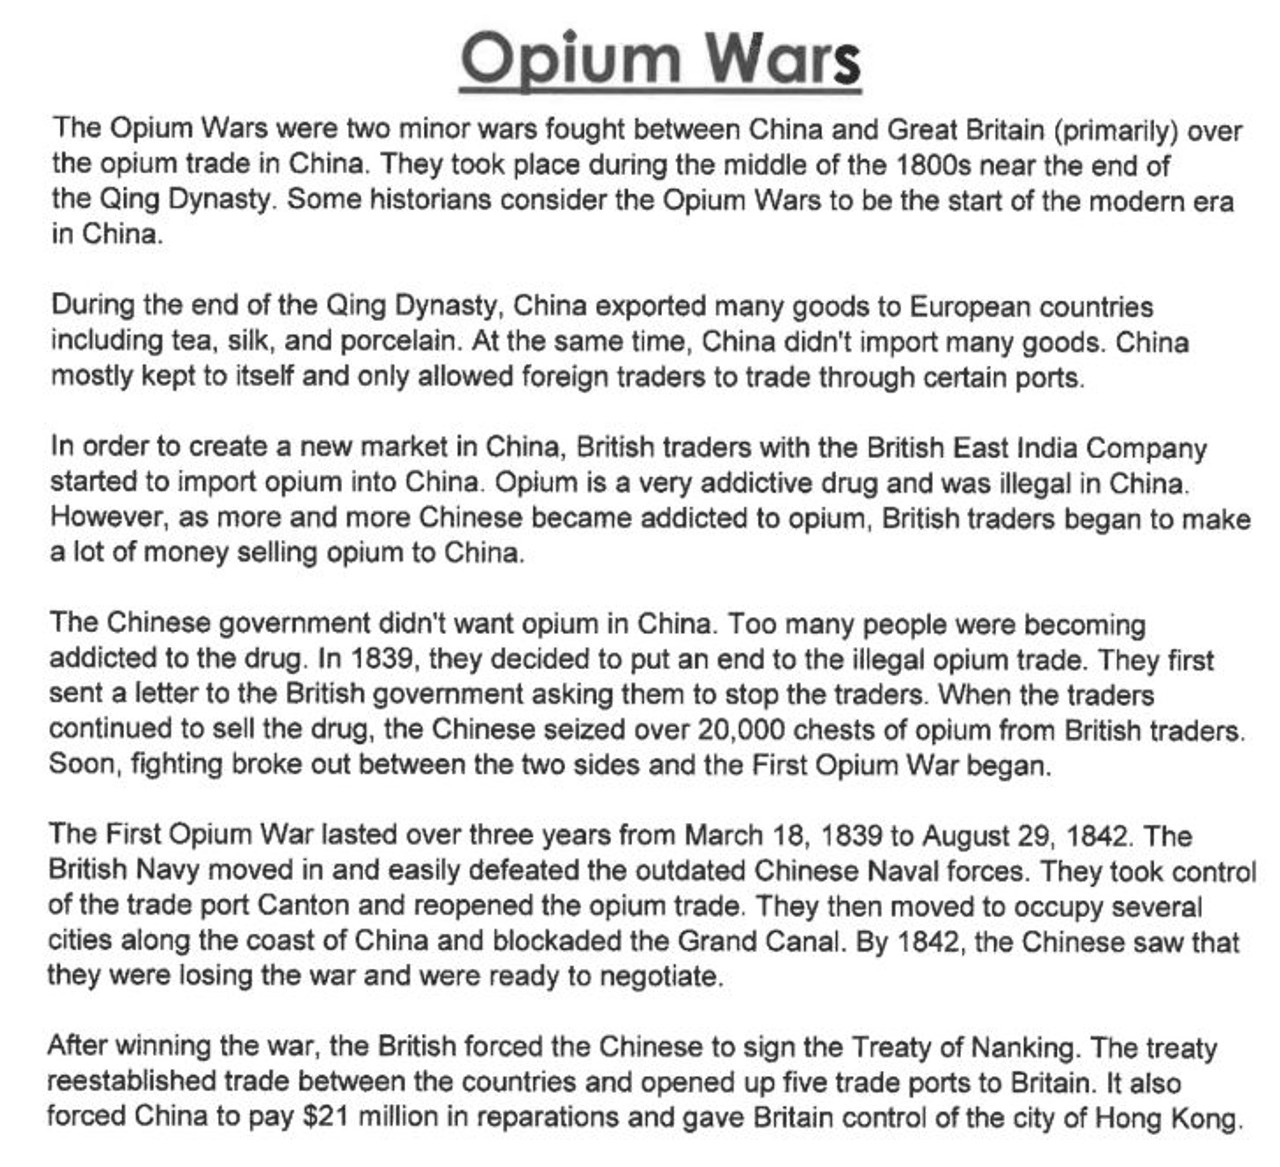 Opium Wars Reading and Questions